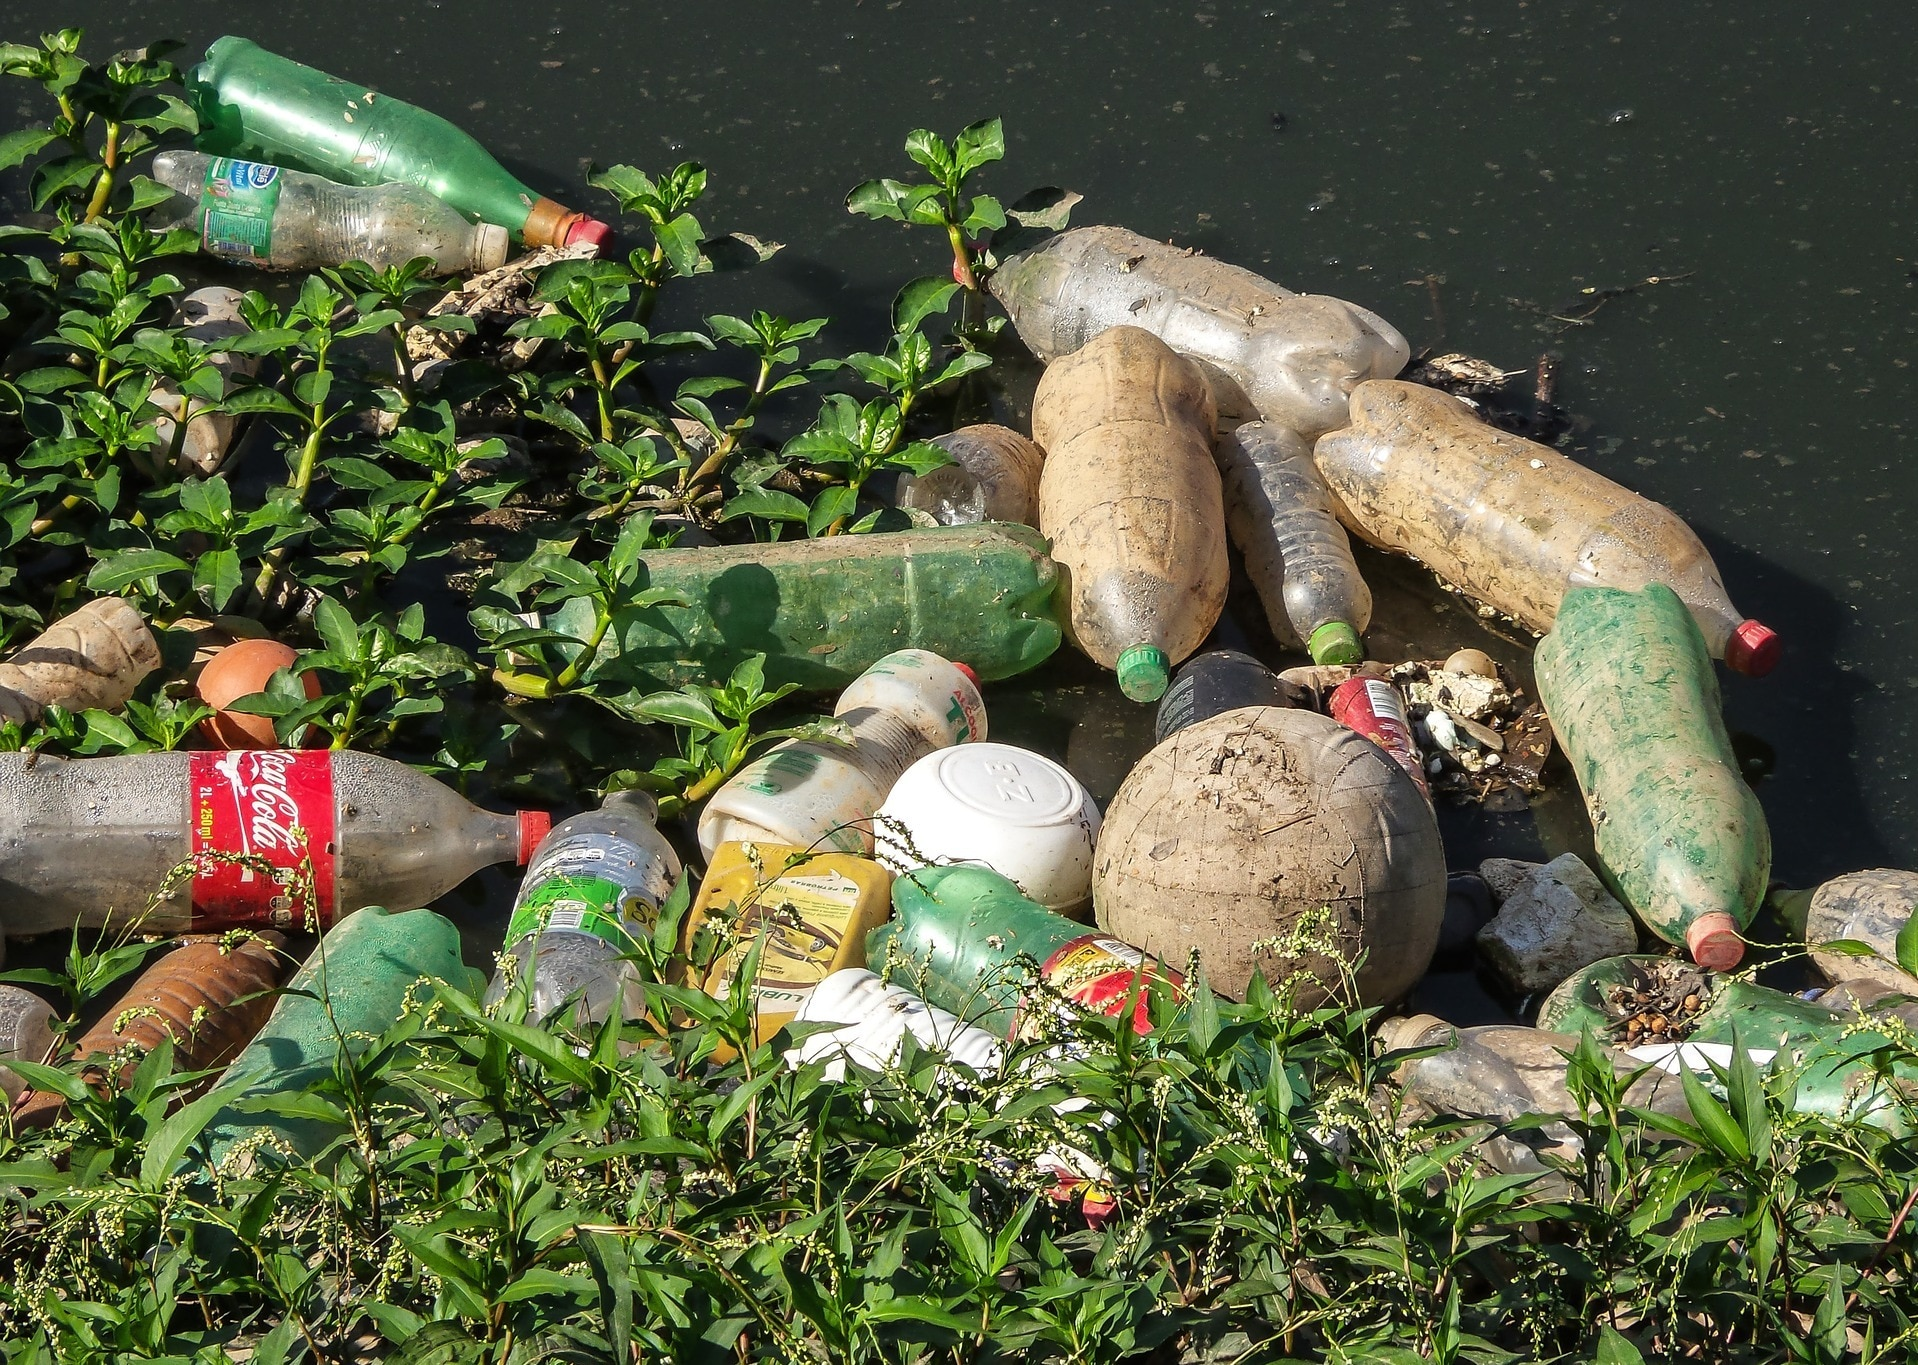 plastic bottle trash washed up on riverbank